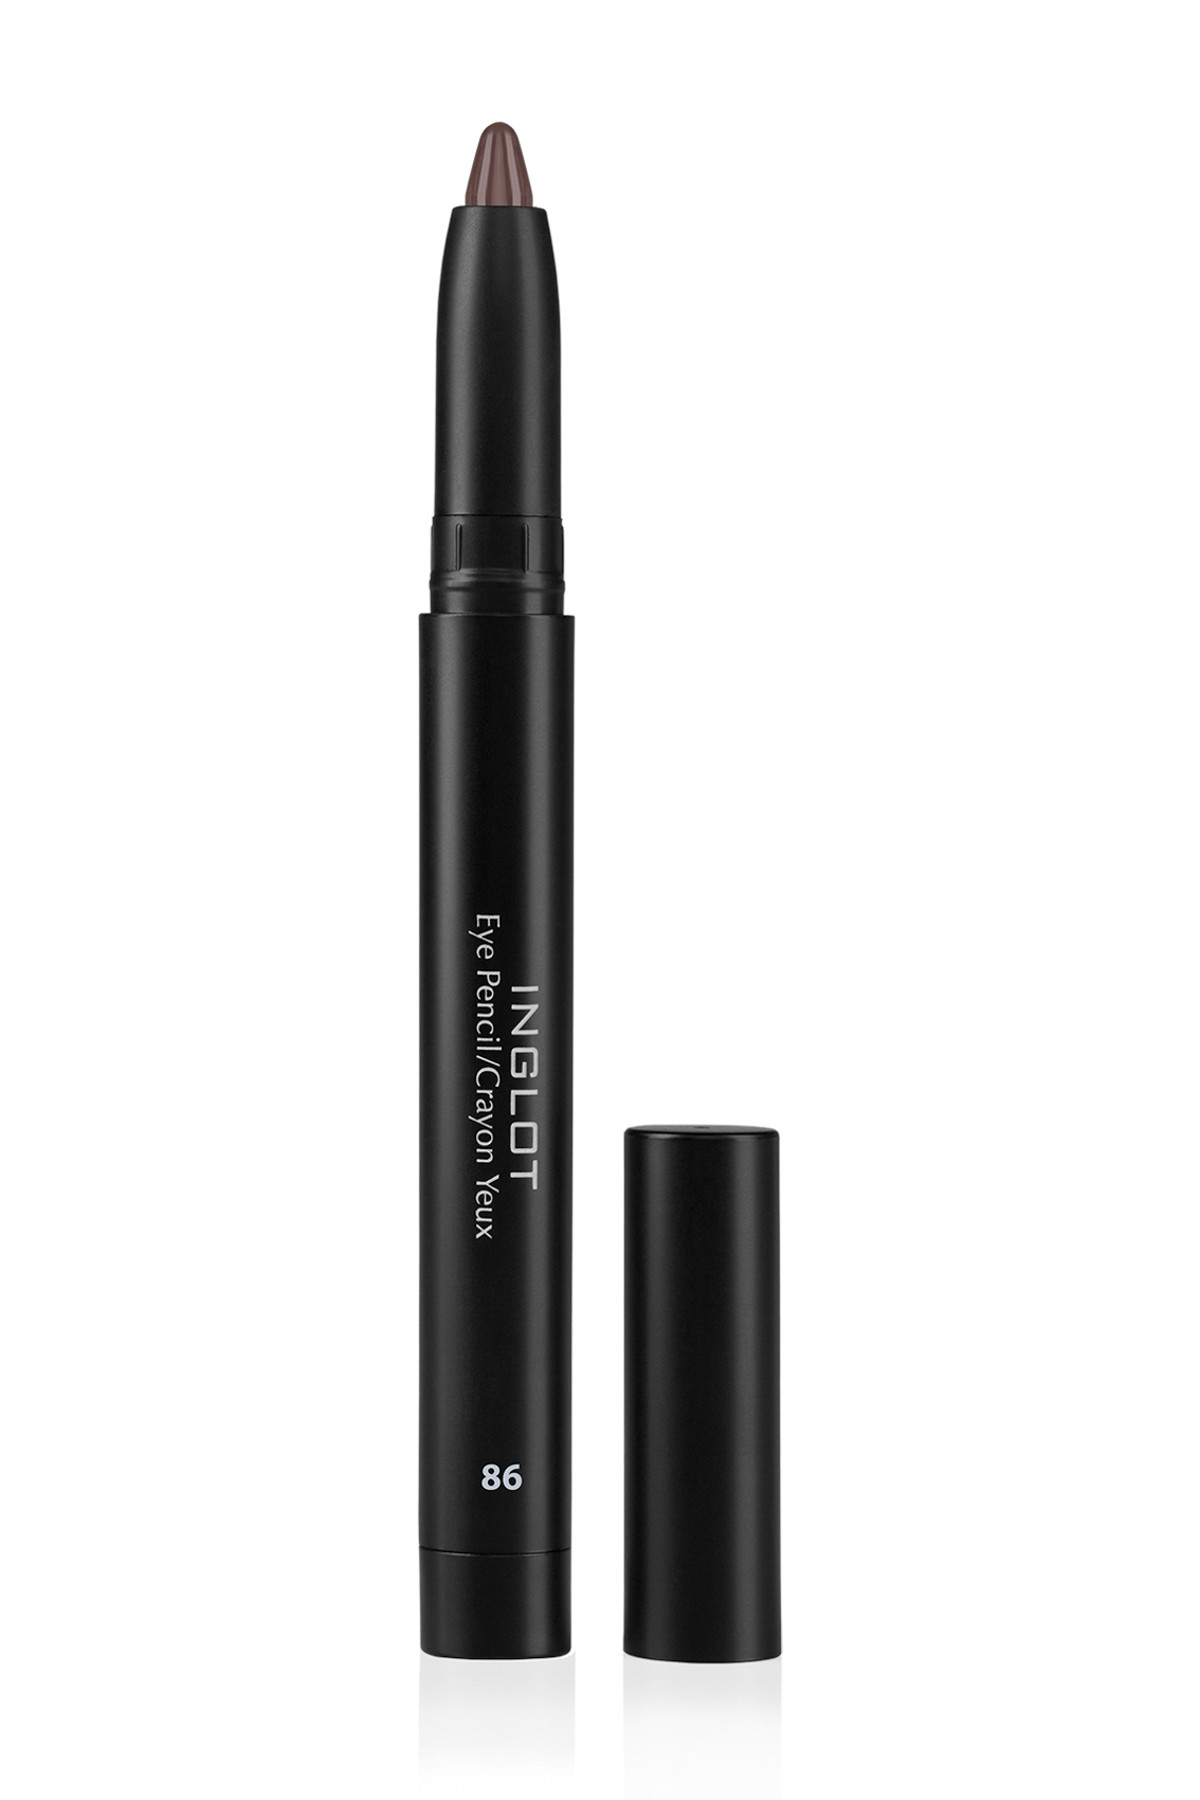 INGLOT Göz Kalemi - Eye Pencil 86 1.8 g 5907587103863 1